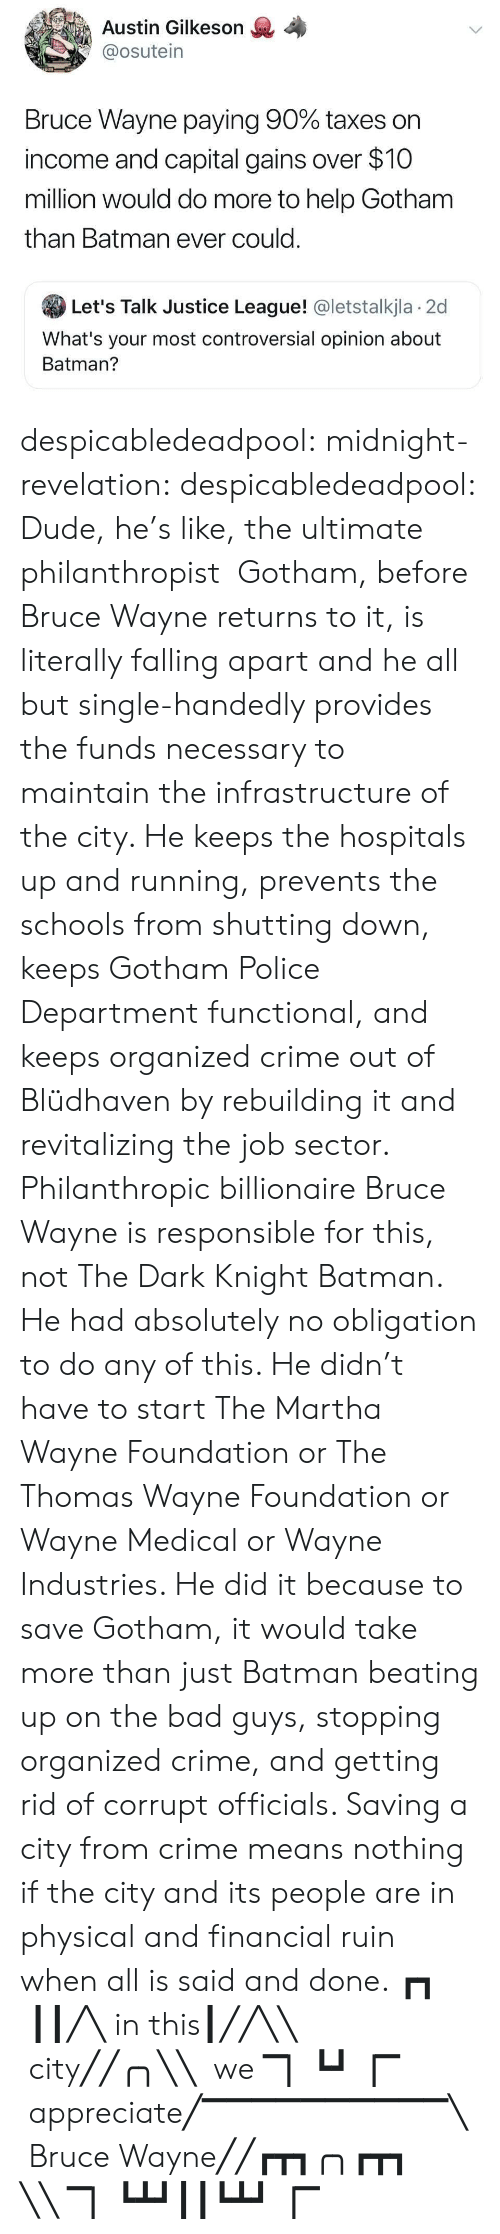 Ruin: Austin Gilkeson  @osutein  Bruce Wayne paying 90% taxes on  income and capital gains over $10  million would do more to help Gotham  than Batman ever could.  Let's Talk Justice League! @letstalkjla 2d  What's your most controversial opinion about  Batman? despicabledeadpool:  midnight-revelation: despicabledeadpool:  Dude, he's like, the ultimate philanthropist   Gotham, before Bruce Wayne returns to it, is literally falling apart and he all but single-handedly provides the funds necessary to maintain the infrastructure of the city. He keeps the hospitals up and running, prevents the schools from shutting down, keeps Gotham Police Department functional, and keeps organized crime out of Blüdhaven by rebuilding it and revitalizing the job sector. Philanthropic billionaire Bruce Wayne is responsible for this, not The Dark Knight Batman. He had absolutely no obligation to do any of this. He didn't have to start The Martha Wayne Foundation or The Thomas Wayne Foundation or Wayne Medical or Wayne Industries. He did it because to save Gotham, it would take more than just Batman beating up on the bad guys, stopping organized crime, and getting rid of corrupt officials. Saving a city from crime means nothing if the city and its people are in physical and financial ruin when all is said and done.  ┏┓  ┃┃╱╲ in this┃╱╱╲╲  city╱╱╭╮╲╲  we ▔▏┗┛▕▔    appreciate╱▔▔▔▔▔▔▔▔▔▔╲  Bruce Wayne╱╱┏┳┓╭╮┏┳┓ ╲╲ ▔▏┗┻┛┃┃┗┻┛▕▔